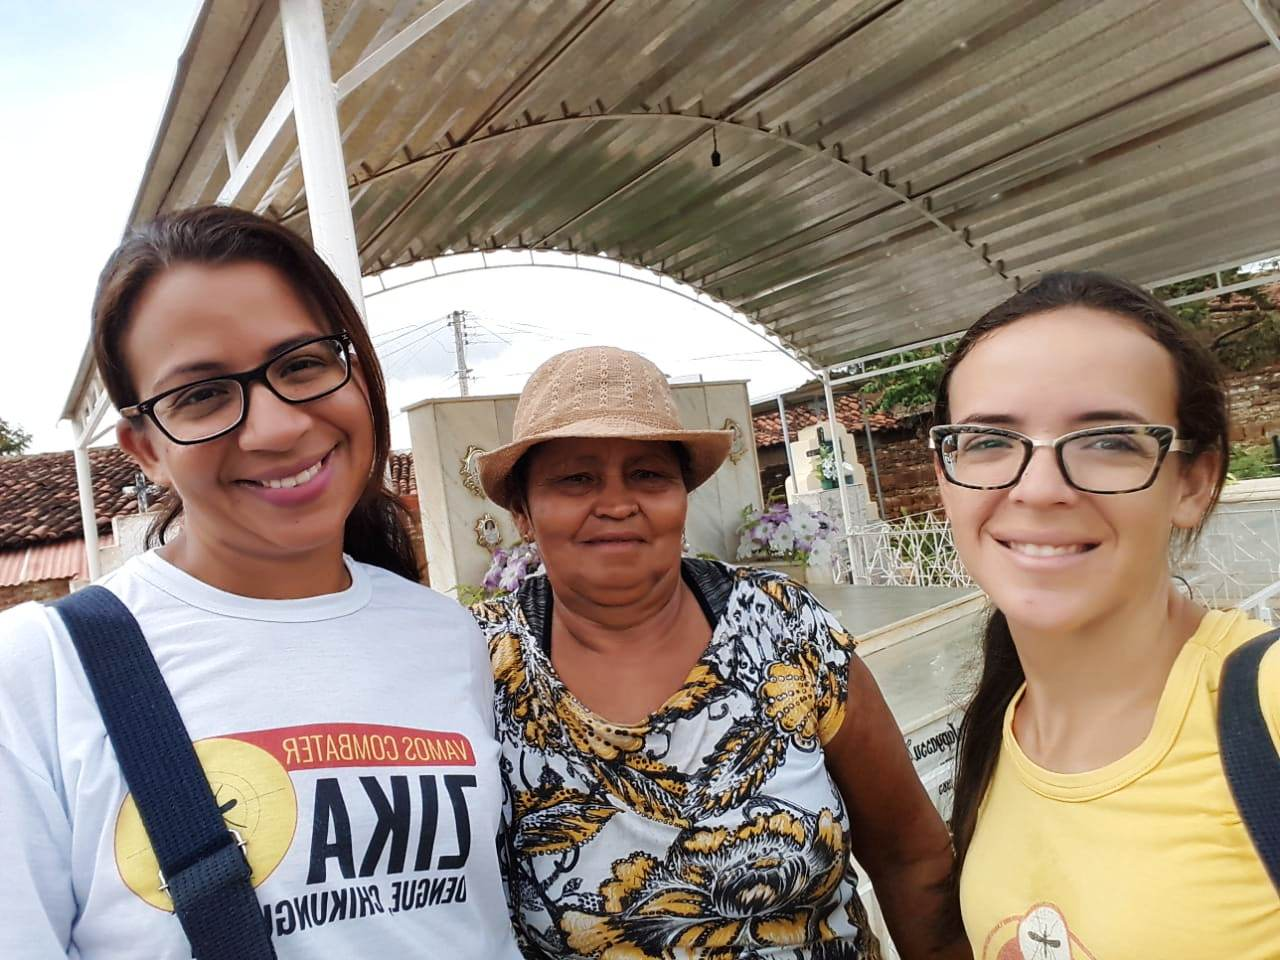 equipe-vs-intensifica-acoes-anti-aedes-16.jpeg